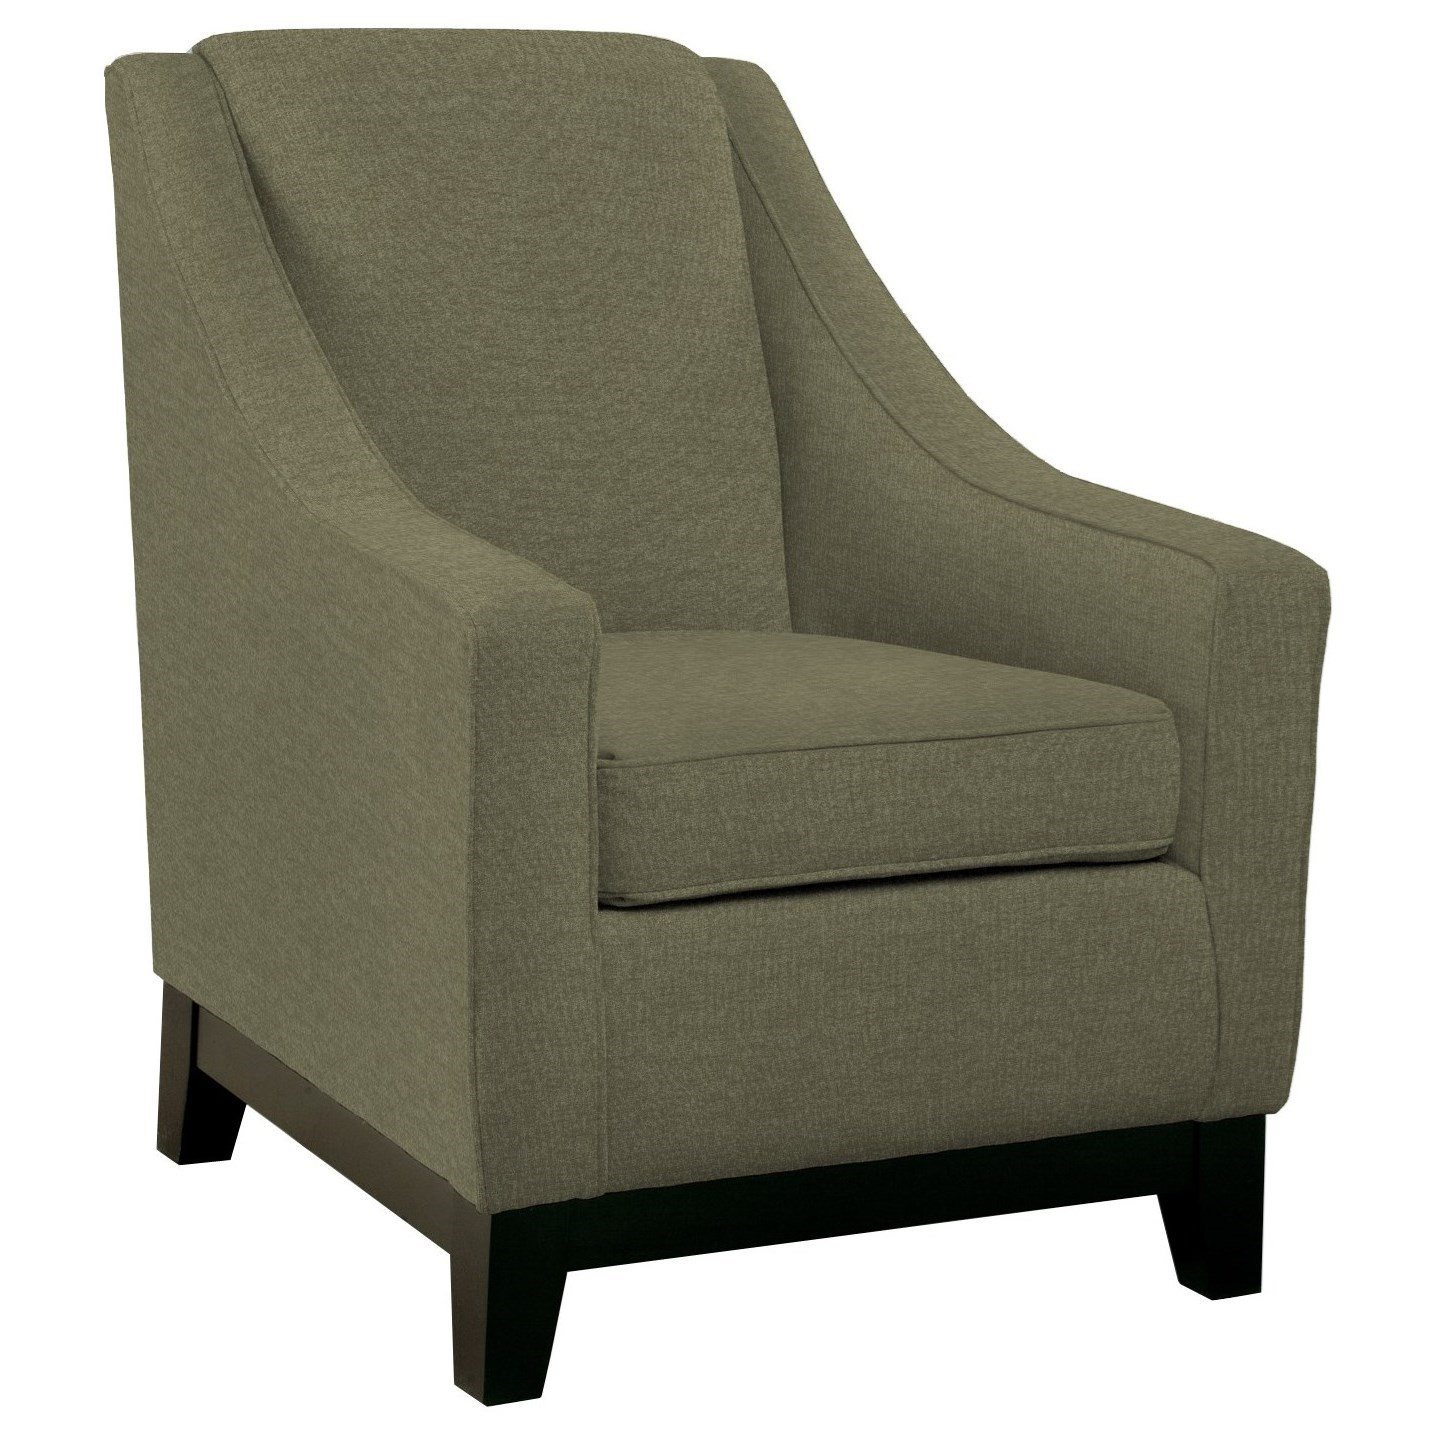 Club Chairs Mariko Club Chair by Best Home Furnishings at Darvin Furniture